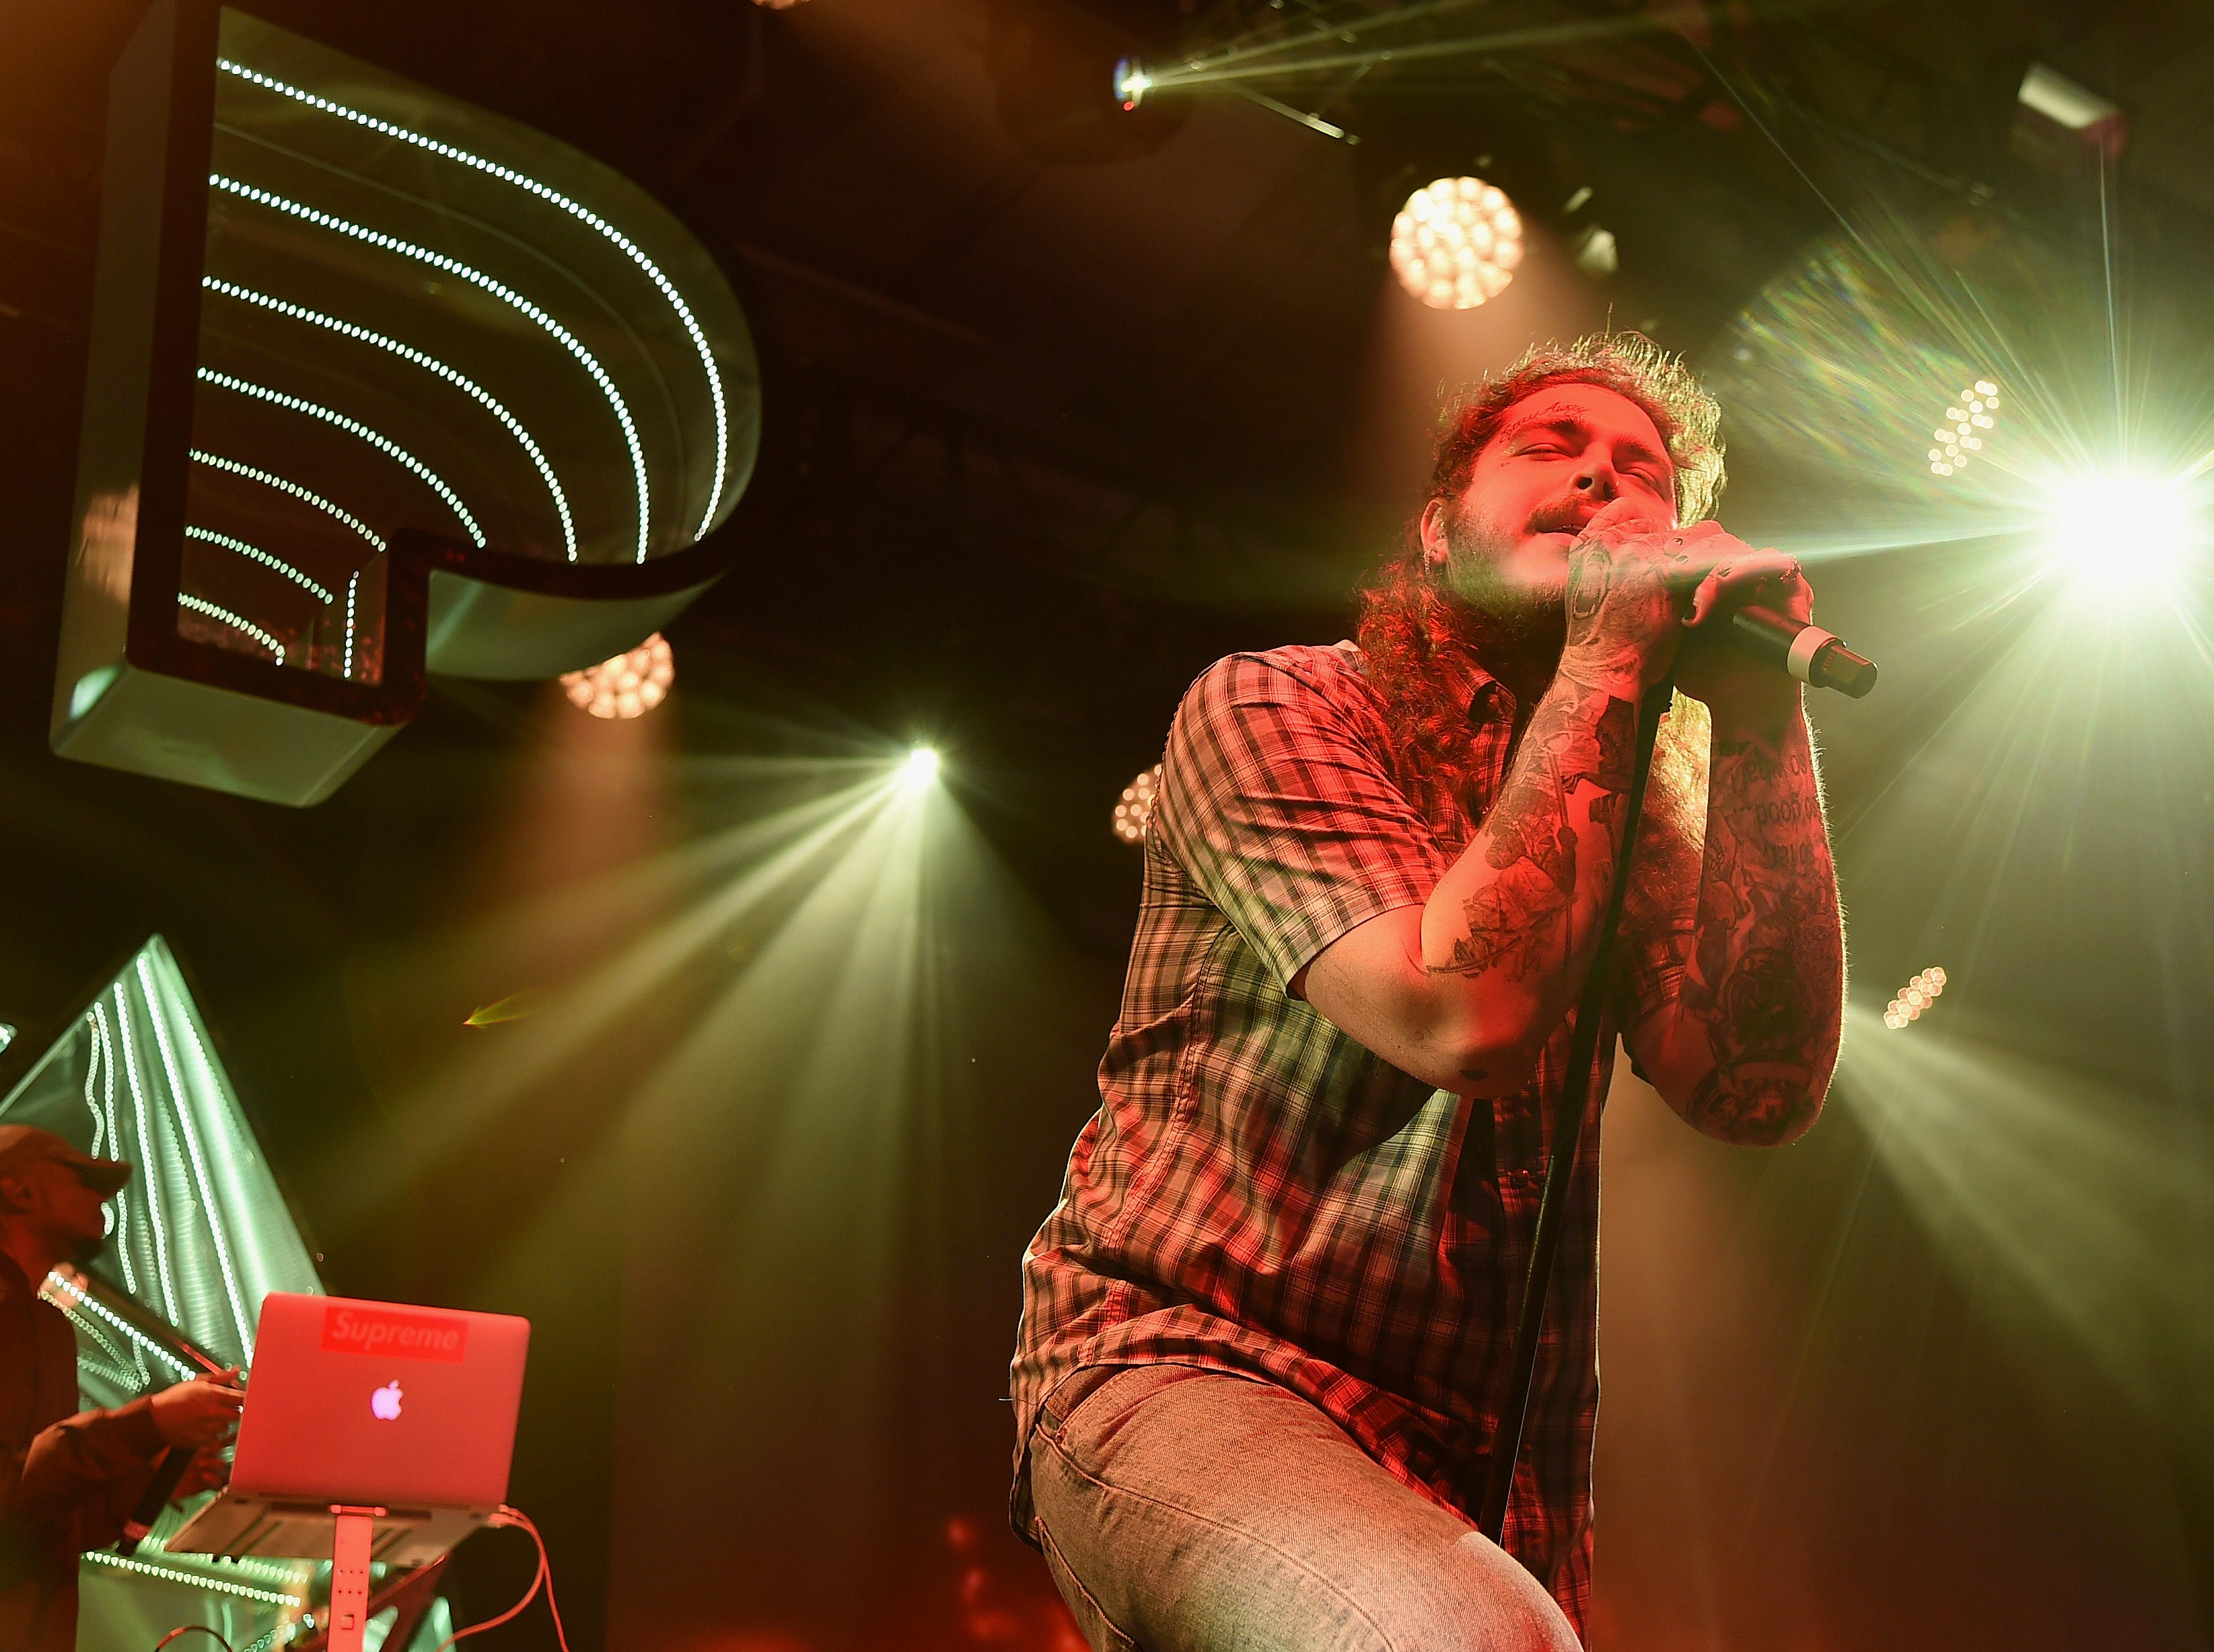 NEW YORK, NY - DECEMBER 05:  Post Malone performs at Pandora Sounds Like You: 2017 on December 5, 2017 in New York City.  (Photo by Theo Wargo/Getty Images for Pandora) ORG XMIT: 775046808 ORIG FILE ID: 886703056